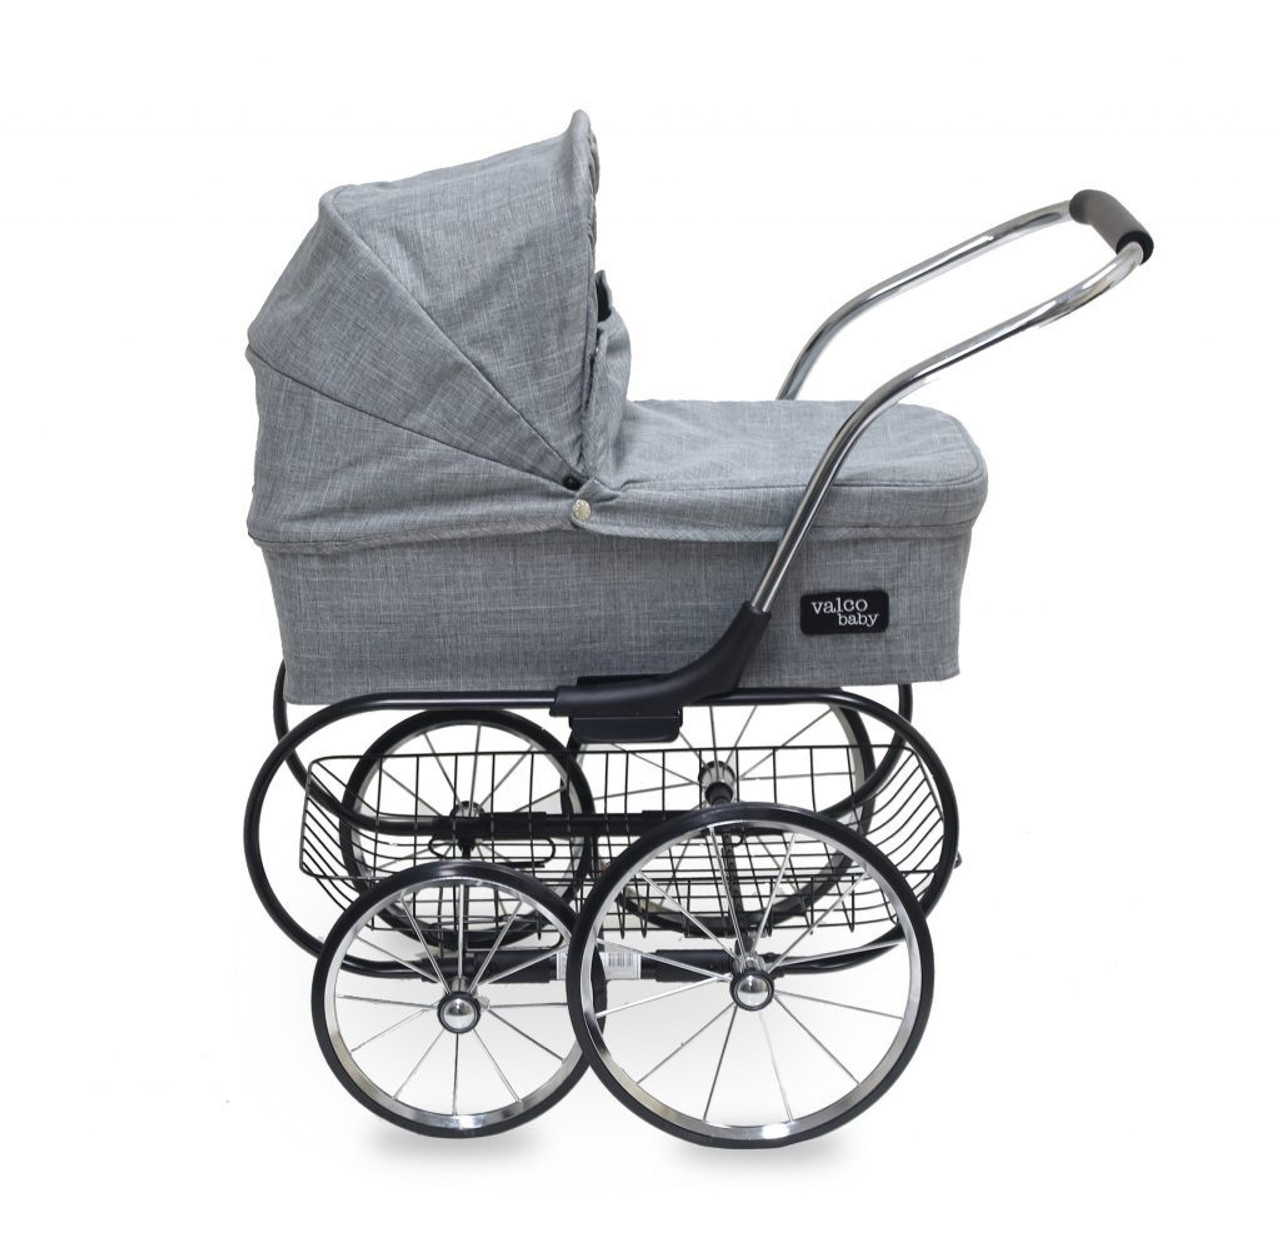 Valco Baby Royale Doll Stroller Grey Marle at Baby Barn Discounts Valco Baby Royale traditional and elegant style doll stroller is one of our most popular prams from our Just Like Mum range.